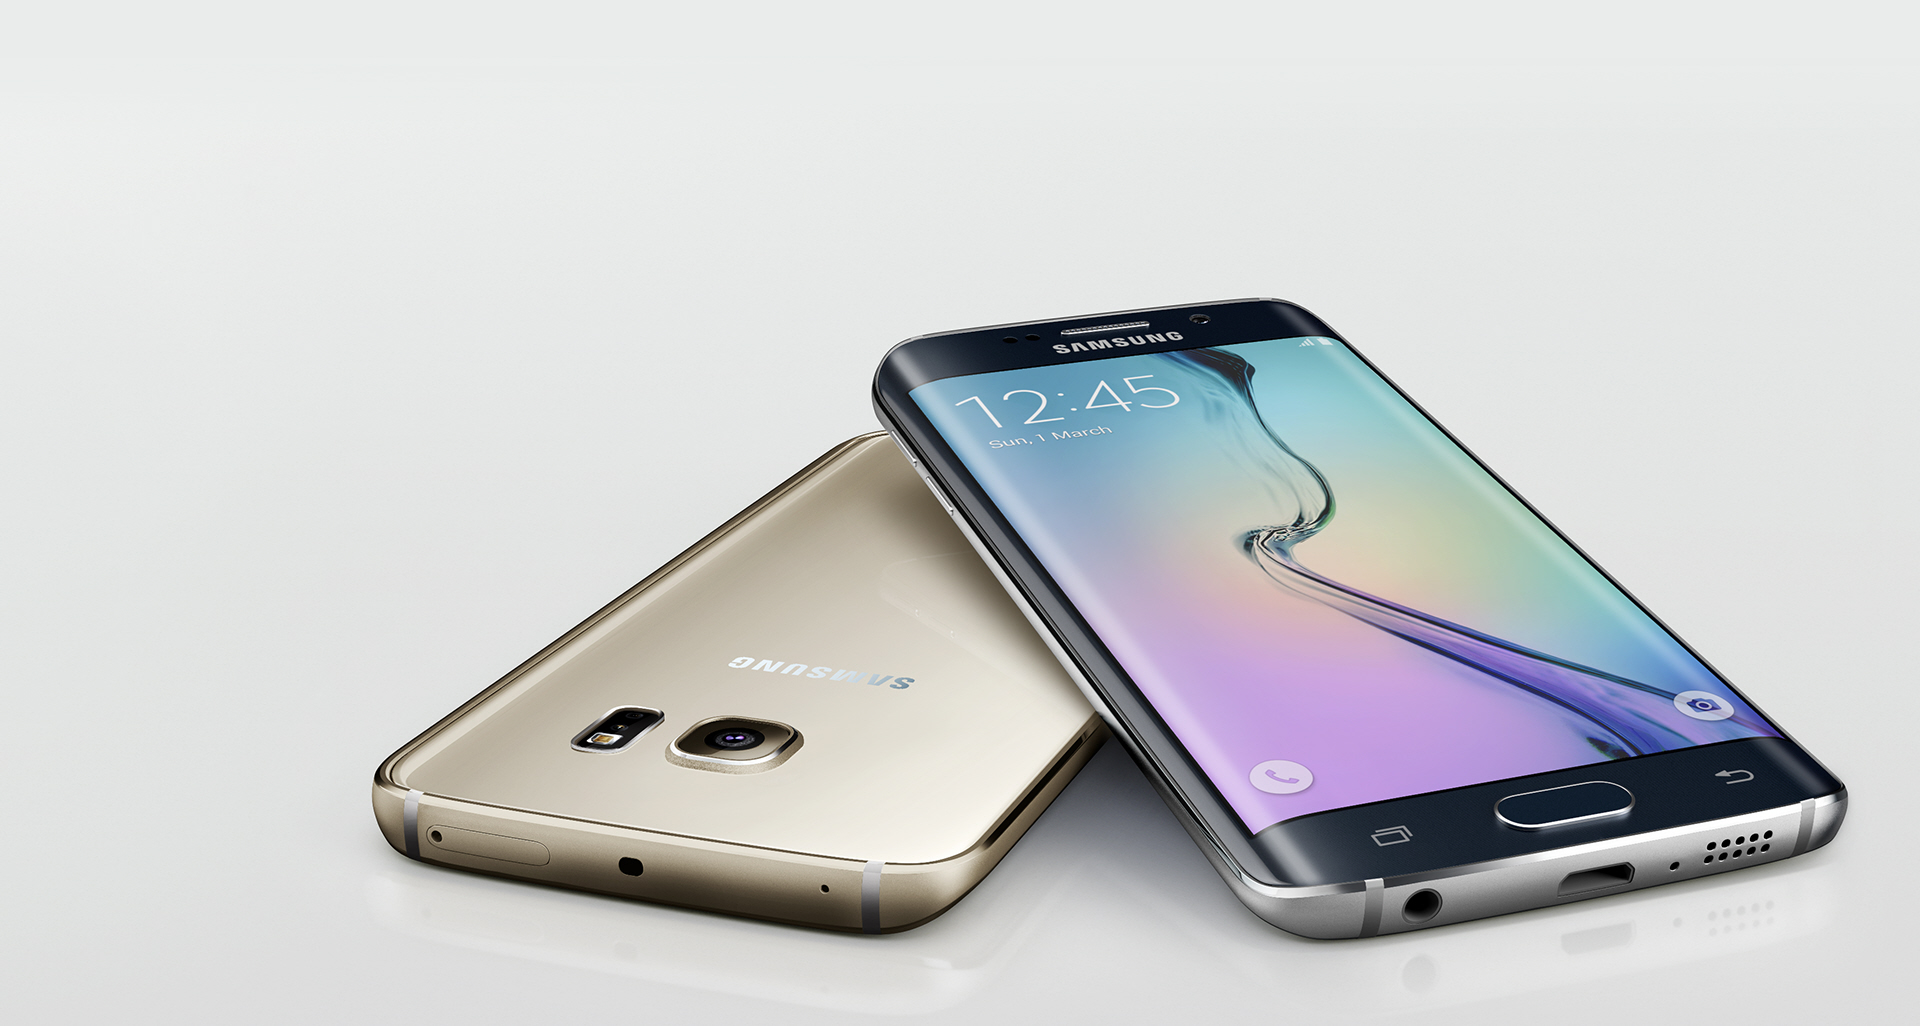 Comparativa entre Samsung Galaxy S6 Edge e iPhone 6